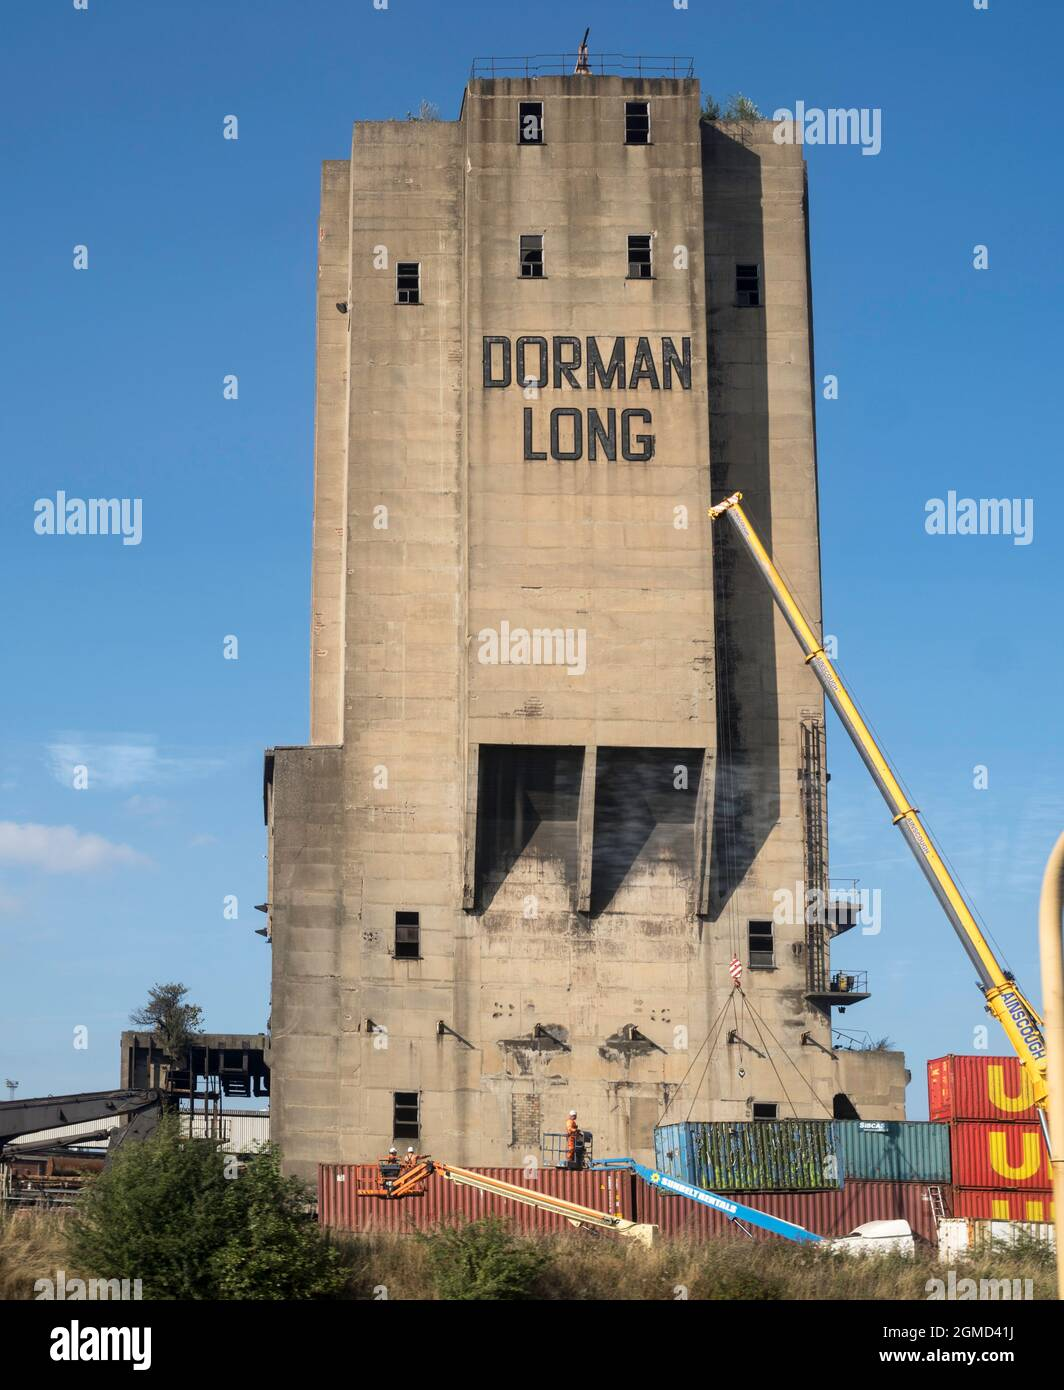 dorman-long-tower-a-listed-structure-tha